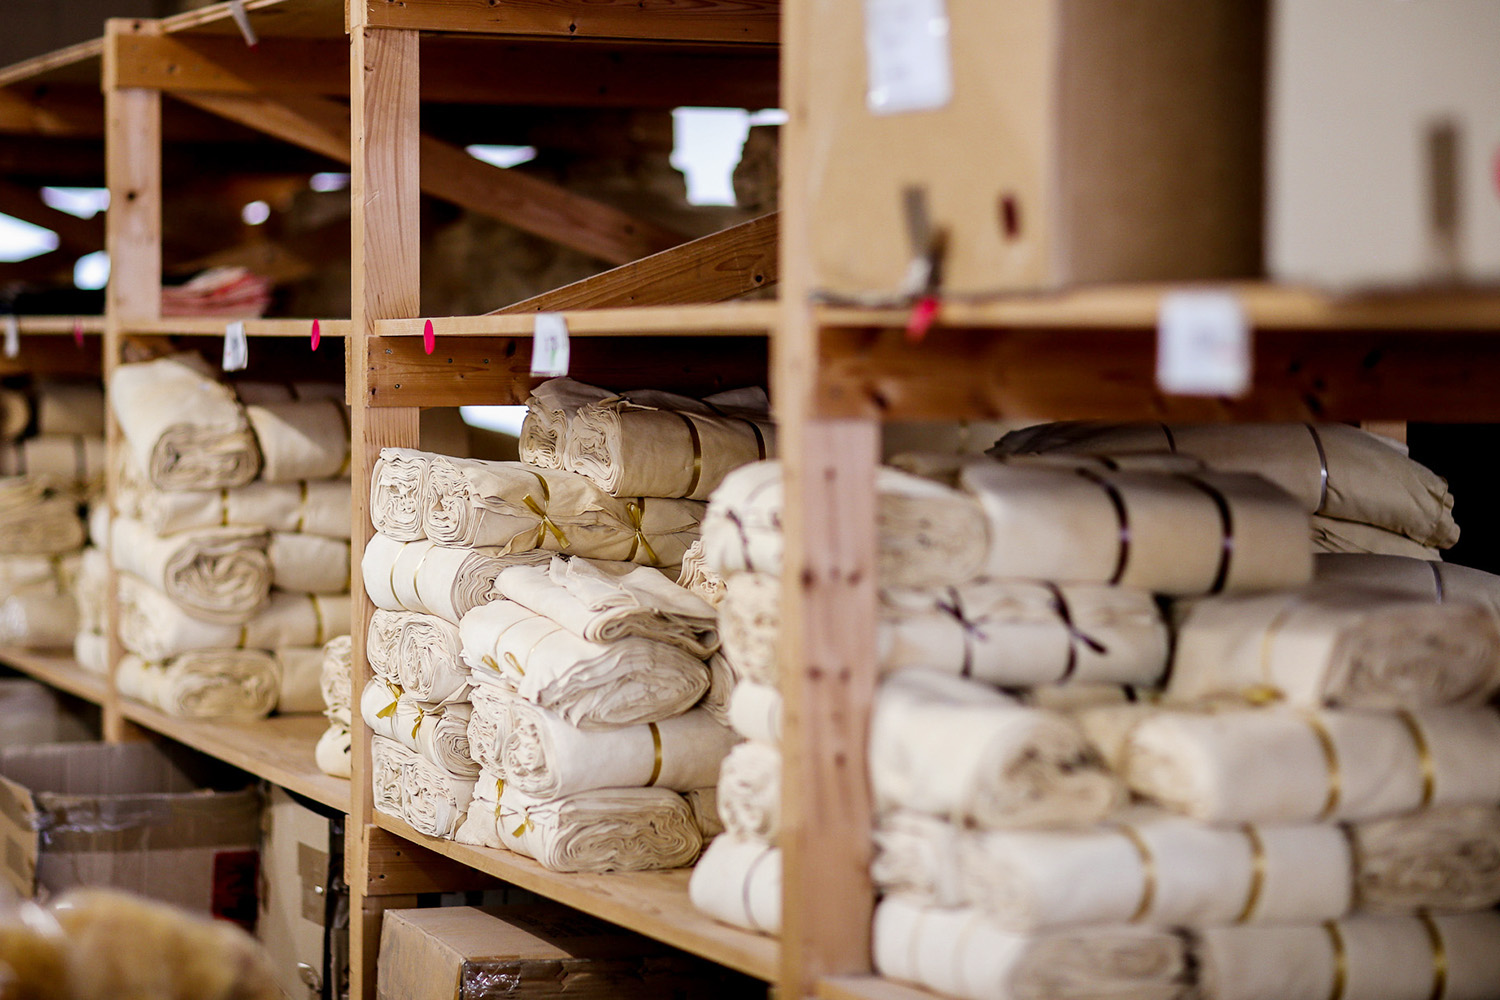 Croll & Denecke stores its products on long shelves where they wait to be sent all over the globe.